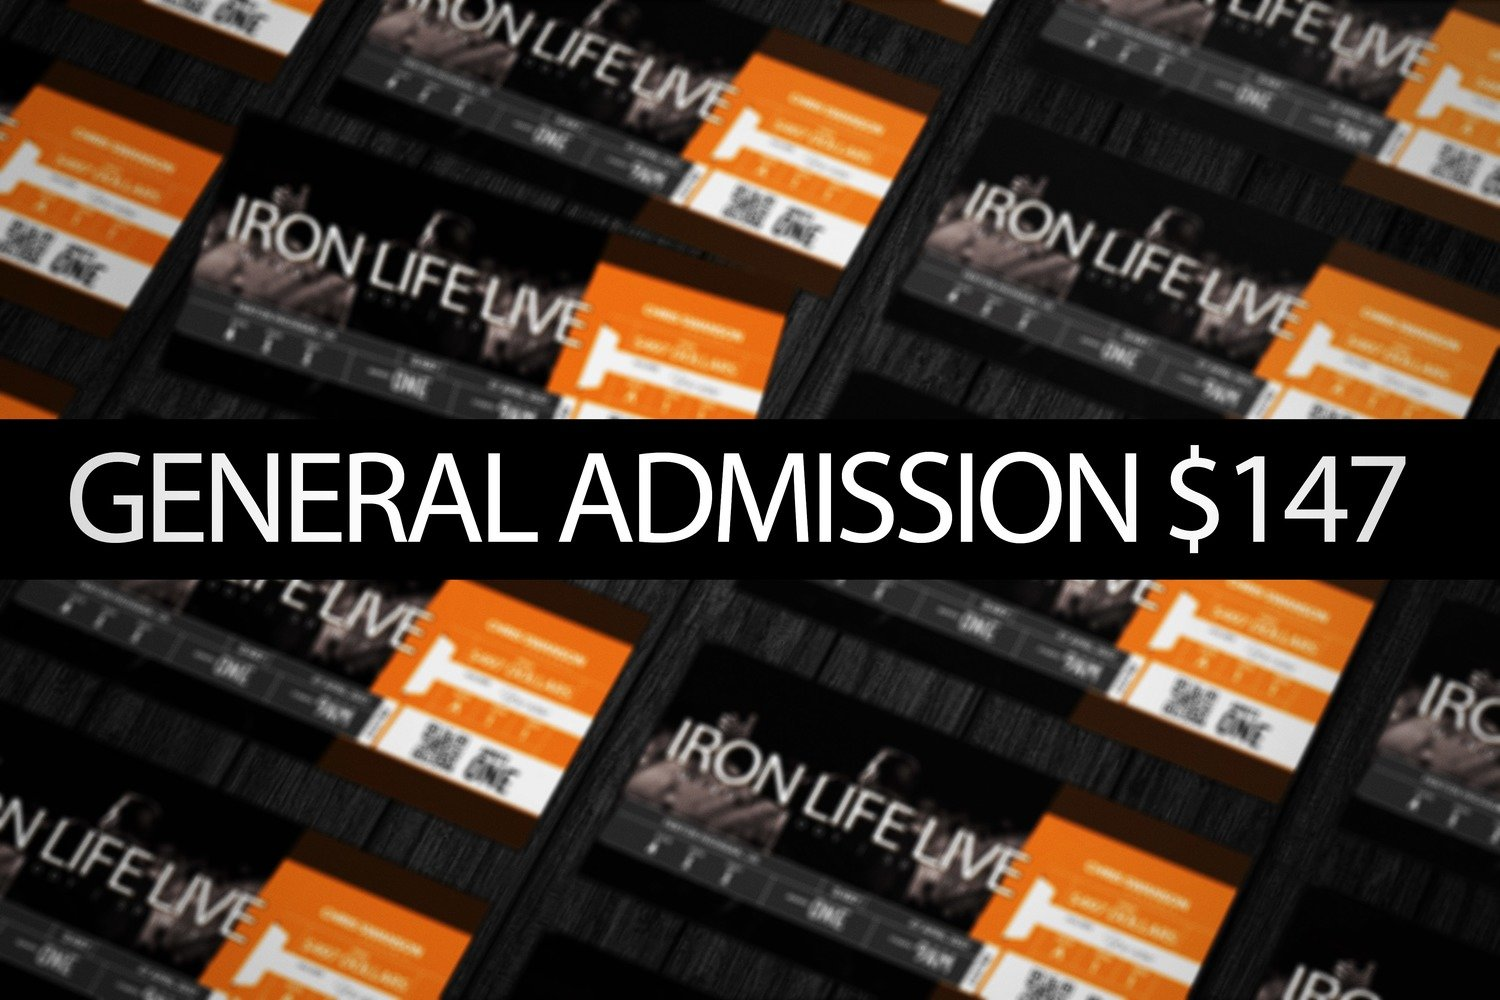 IRON LIFE LIVE - General Admission